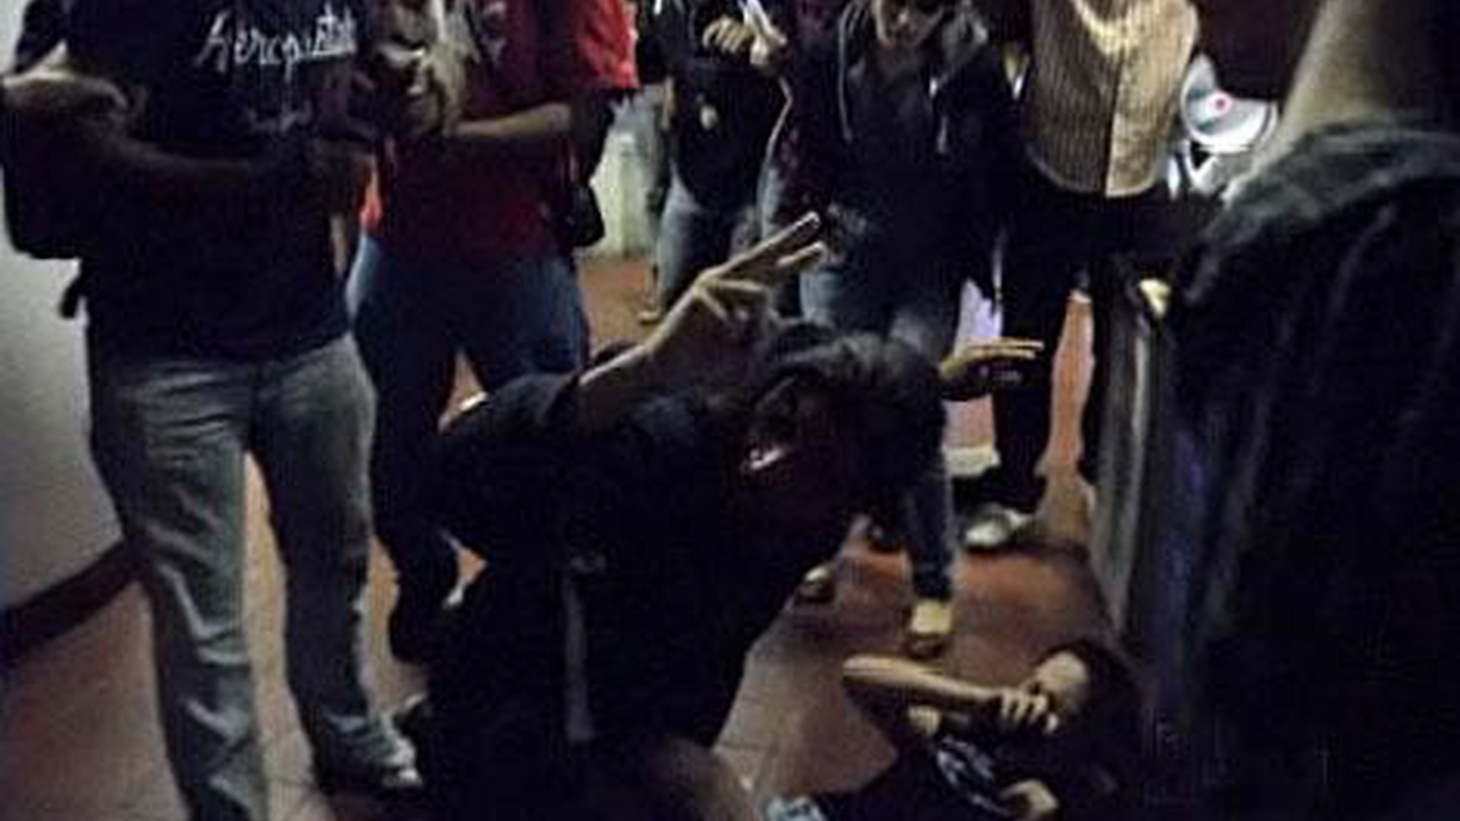 Student protesters were pepper-sprayed last night at Santa Monica College. The clash was sparked by efforts to cope with state's crisis in higher education funding.